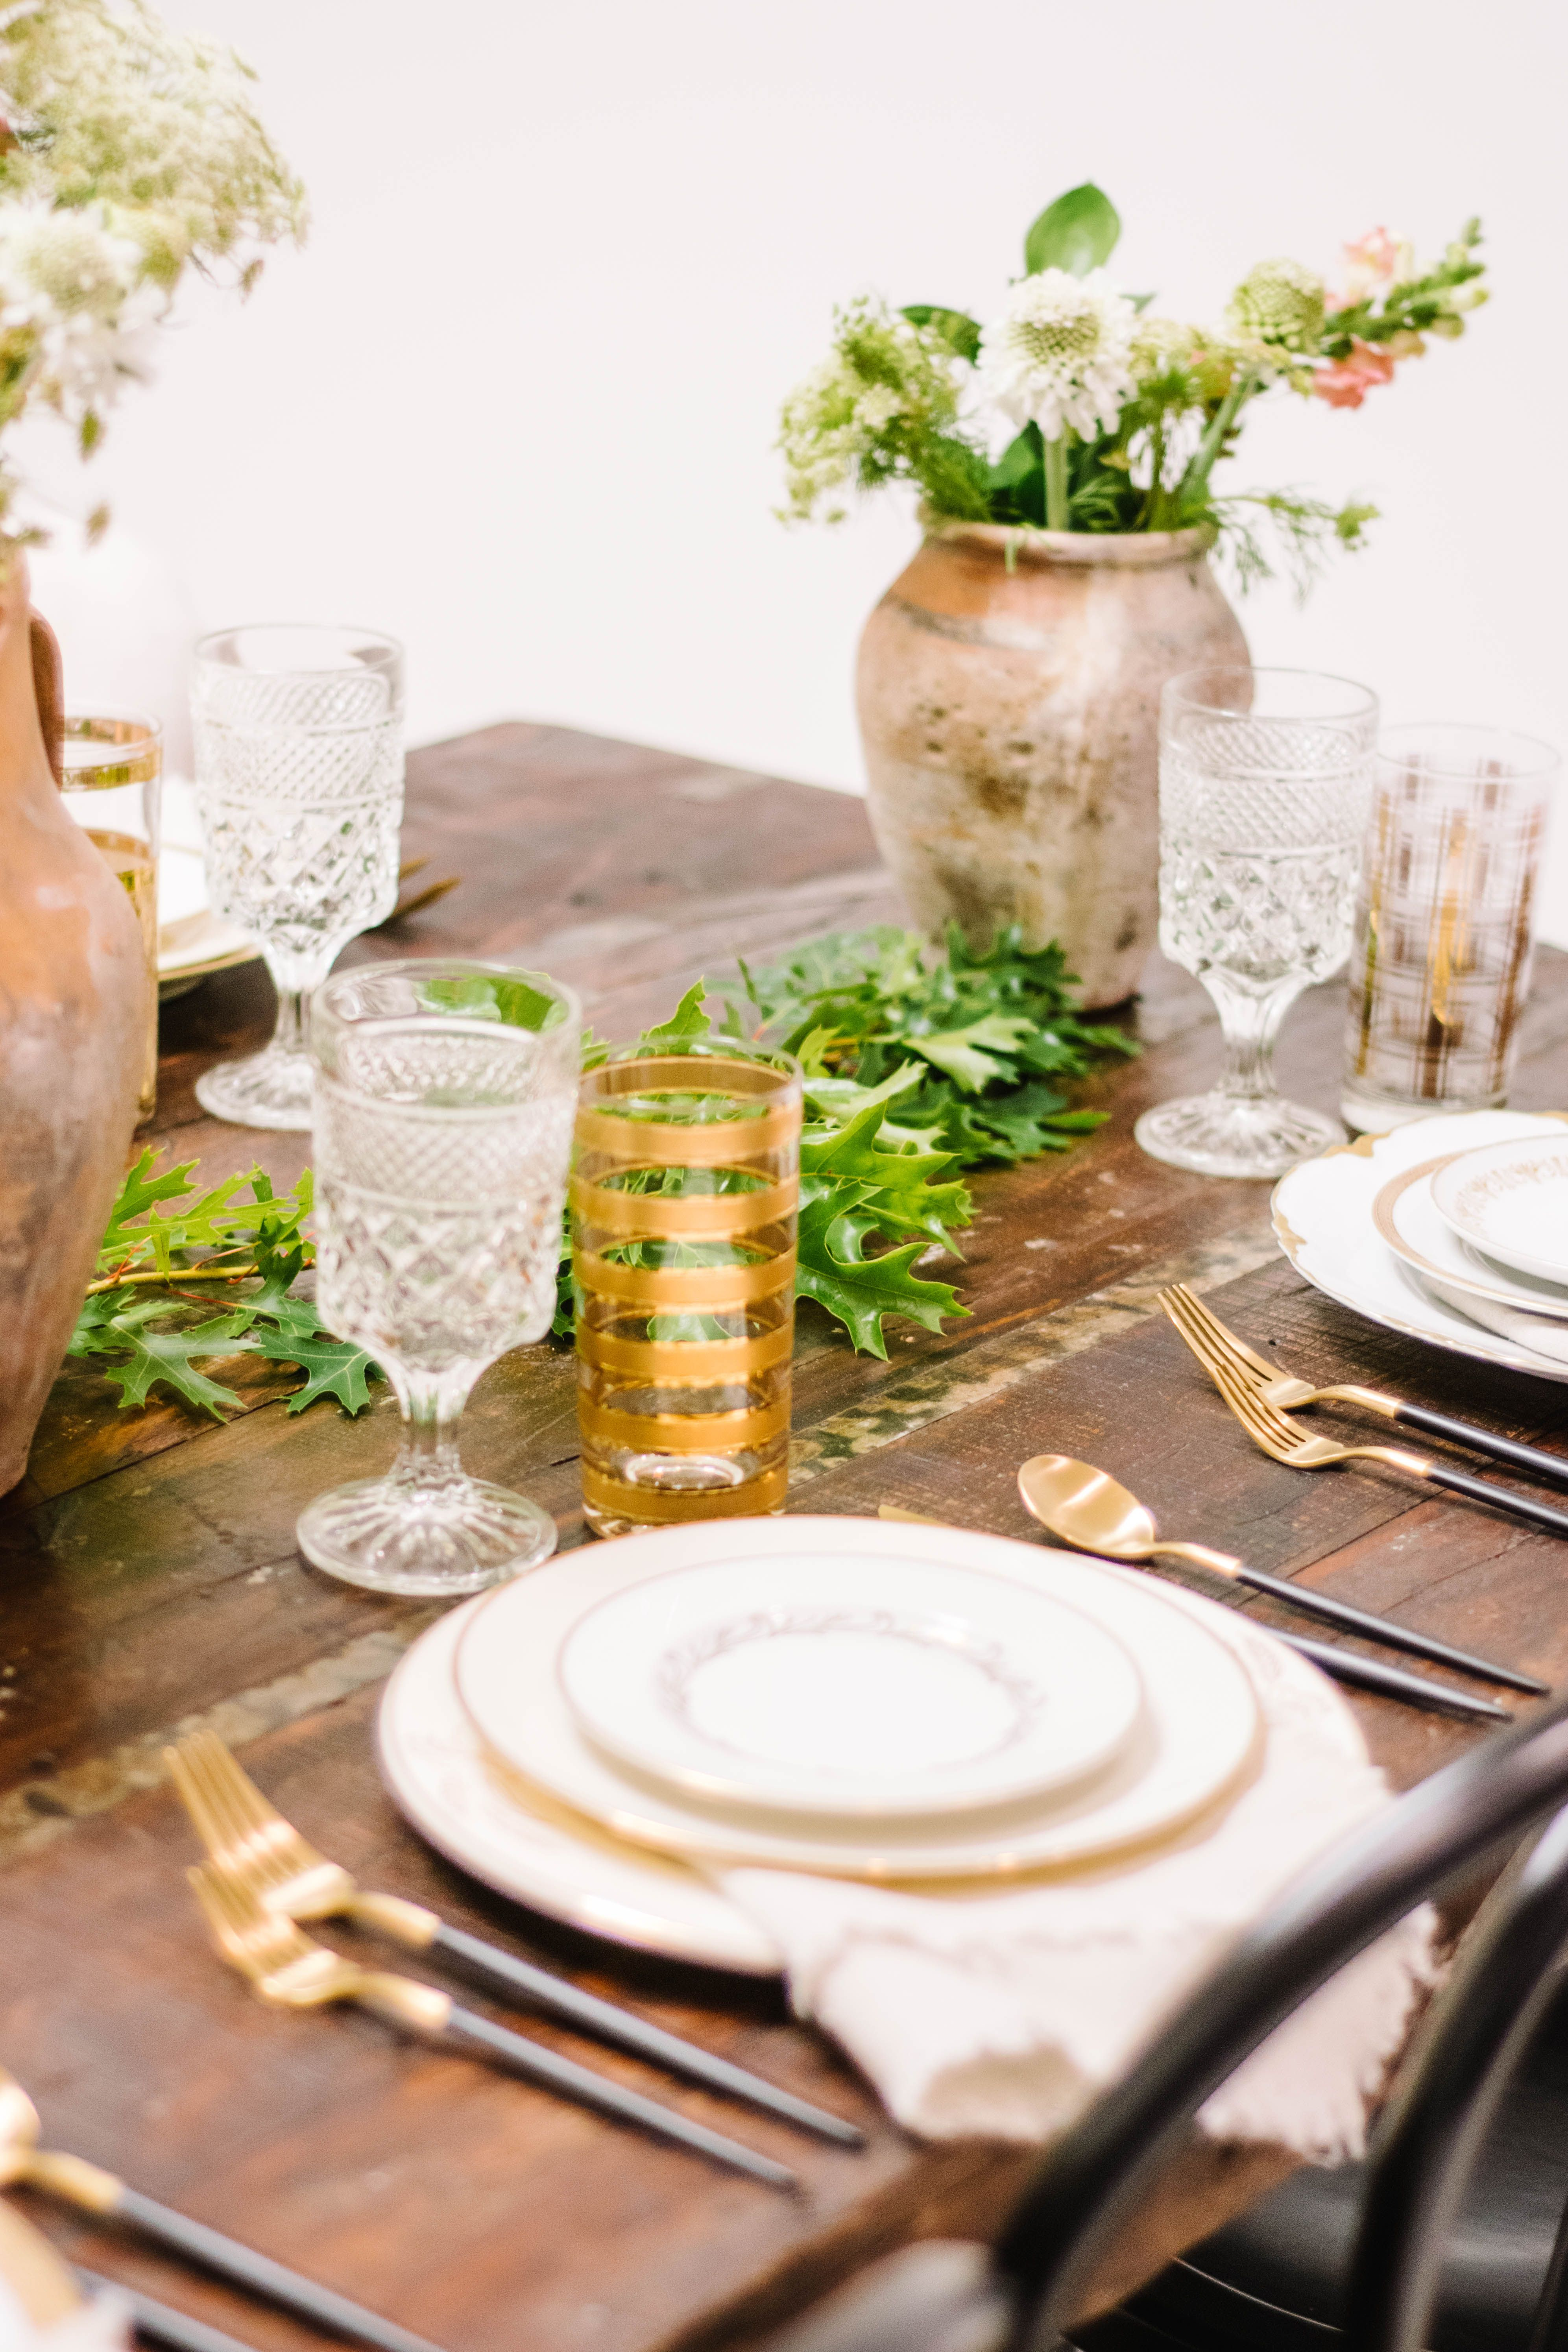 Pleasant Reclaimed Wood Farm Table For Weddings And Corporate Events Interior Design Ideas Gentotthenellocom